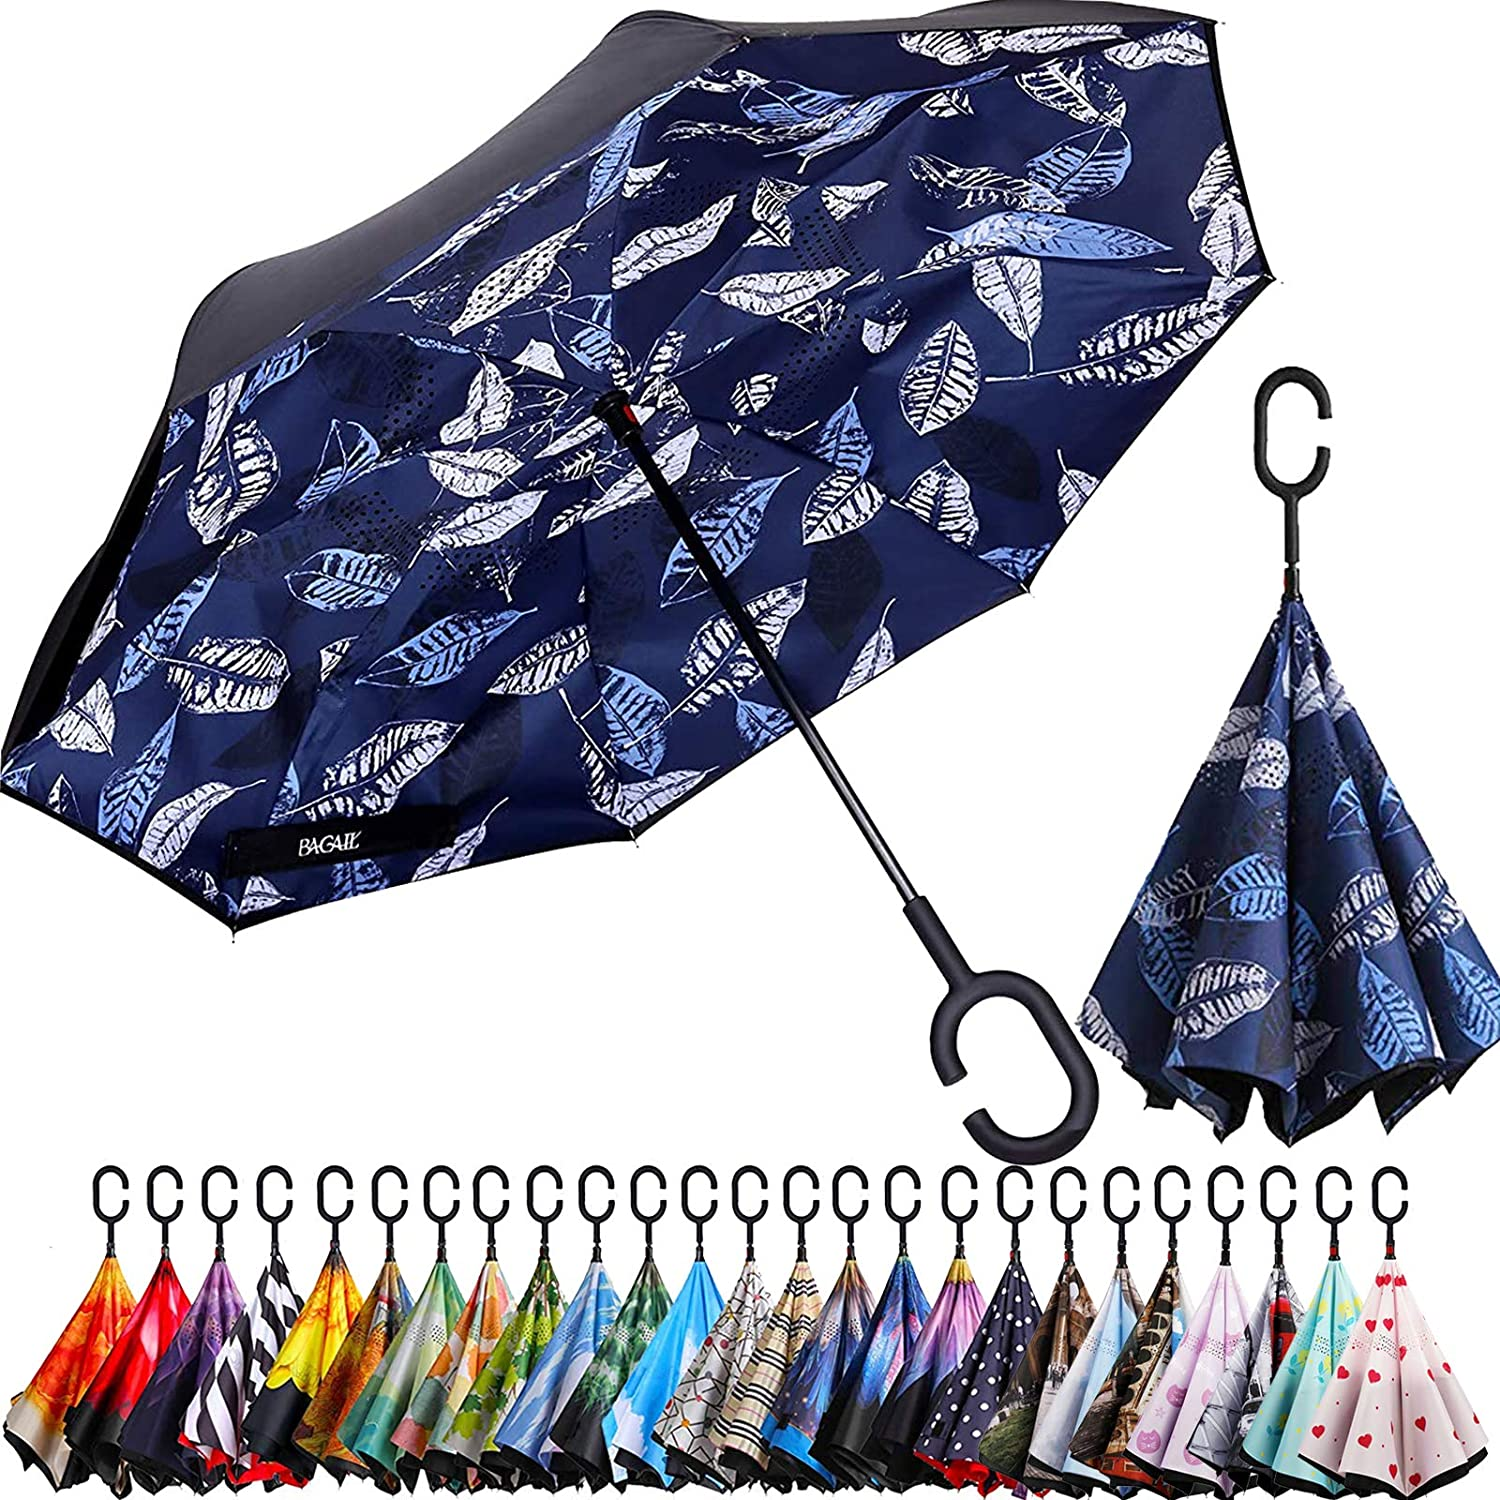 Double Layer Inverted Inverted Umbrella Is Light And Sturdy Romantic Card Valentines Day Funny Swans Reverse Umbrella And Windproof Umbrella Edge Nig